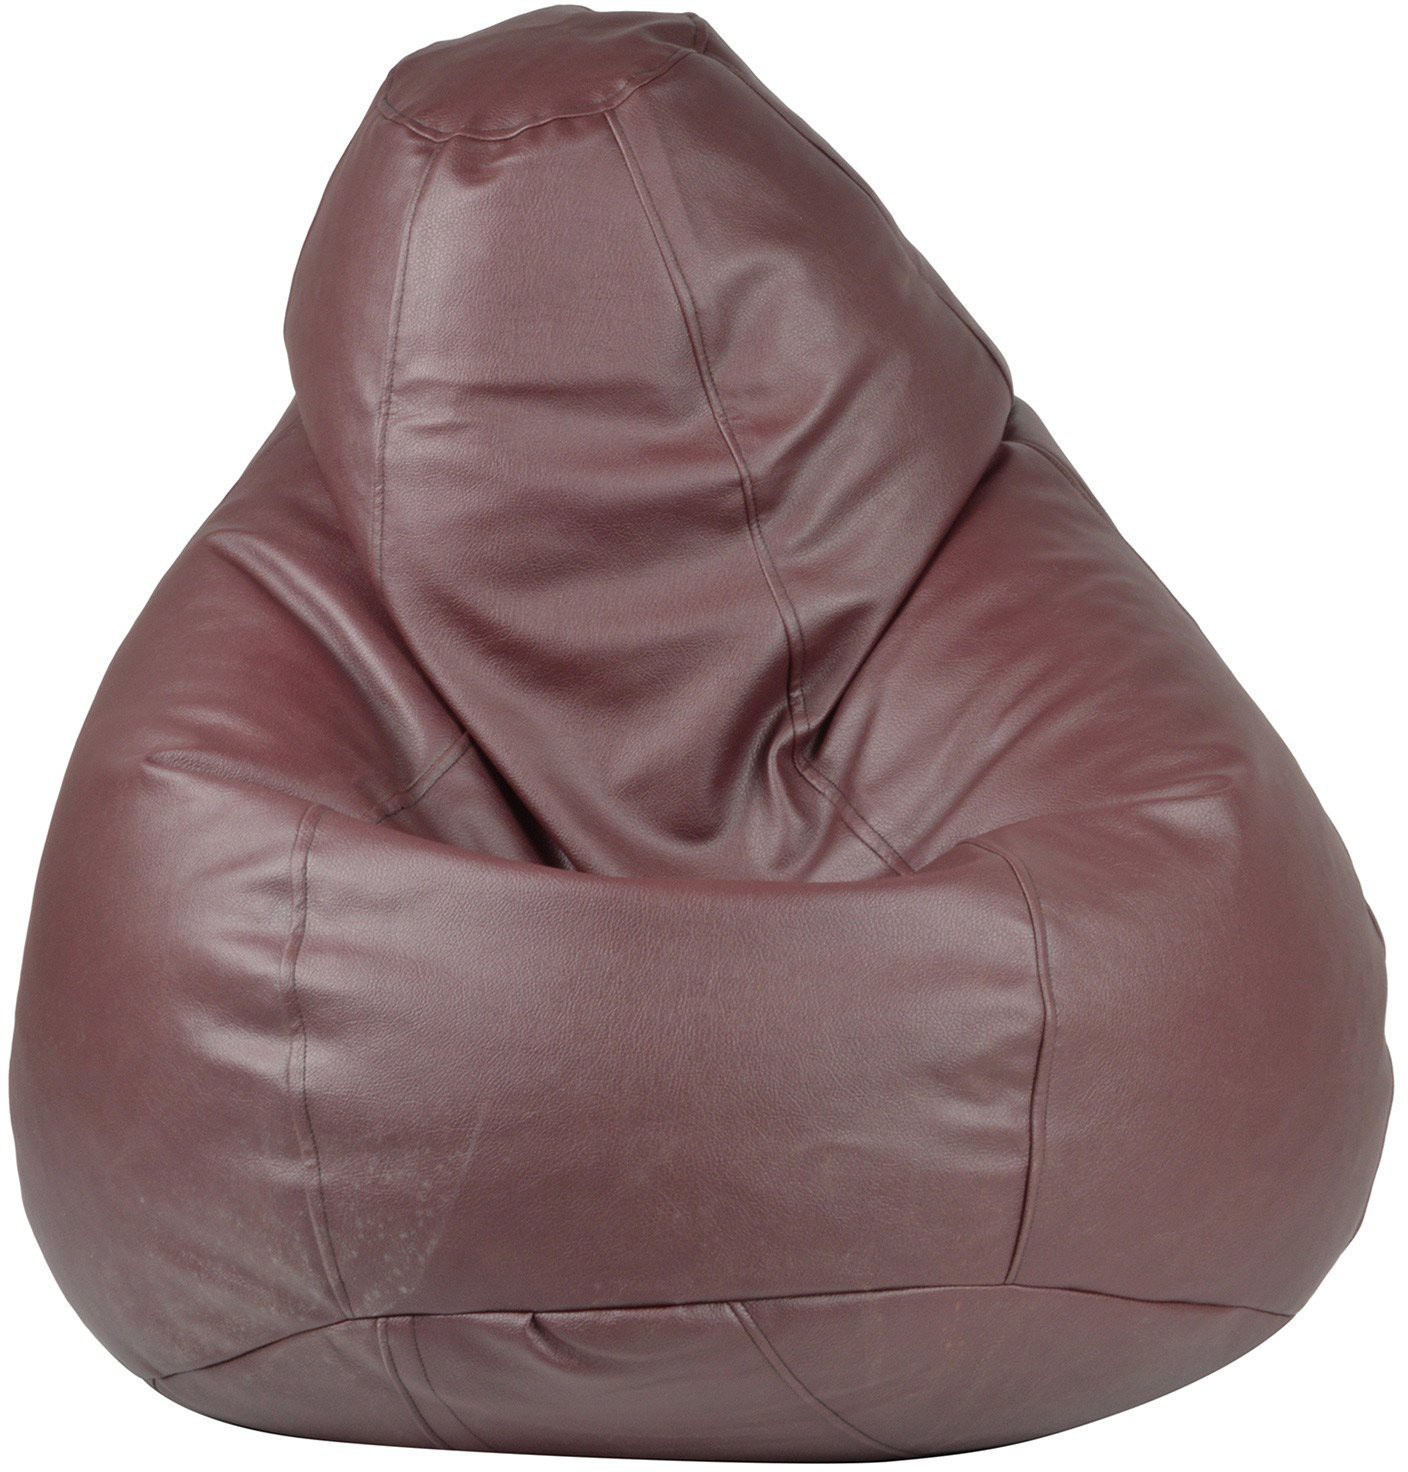 View Galaxy Decorz XXXL Bean Bag Cover(Maroon) Furniture (Galaxy Decorz)